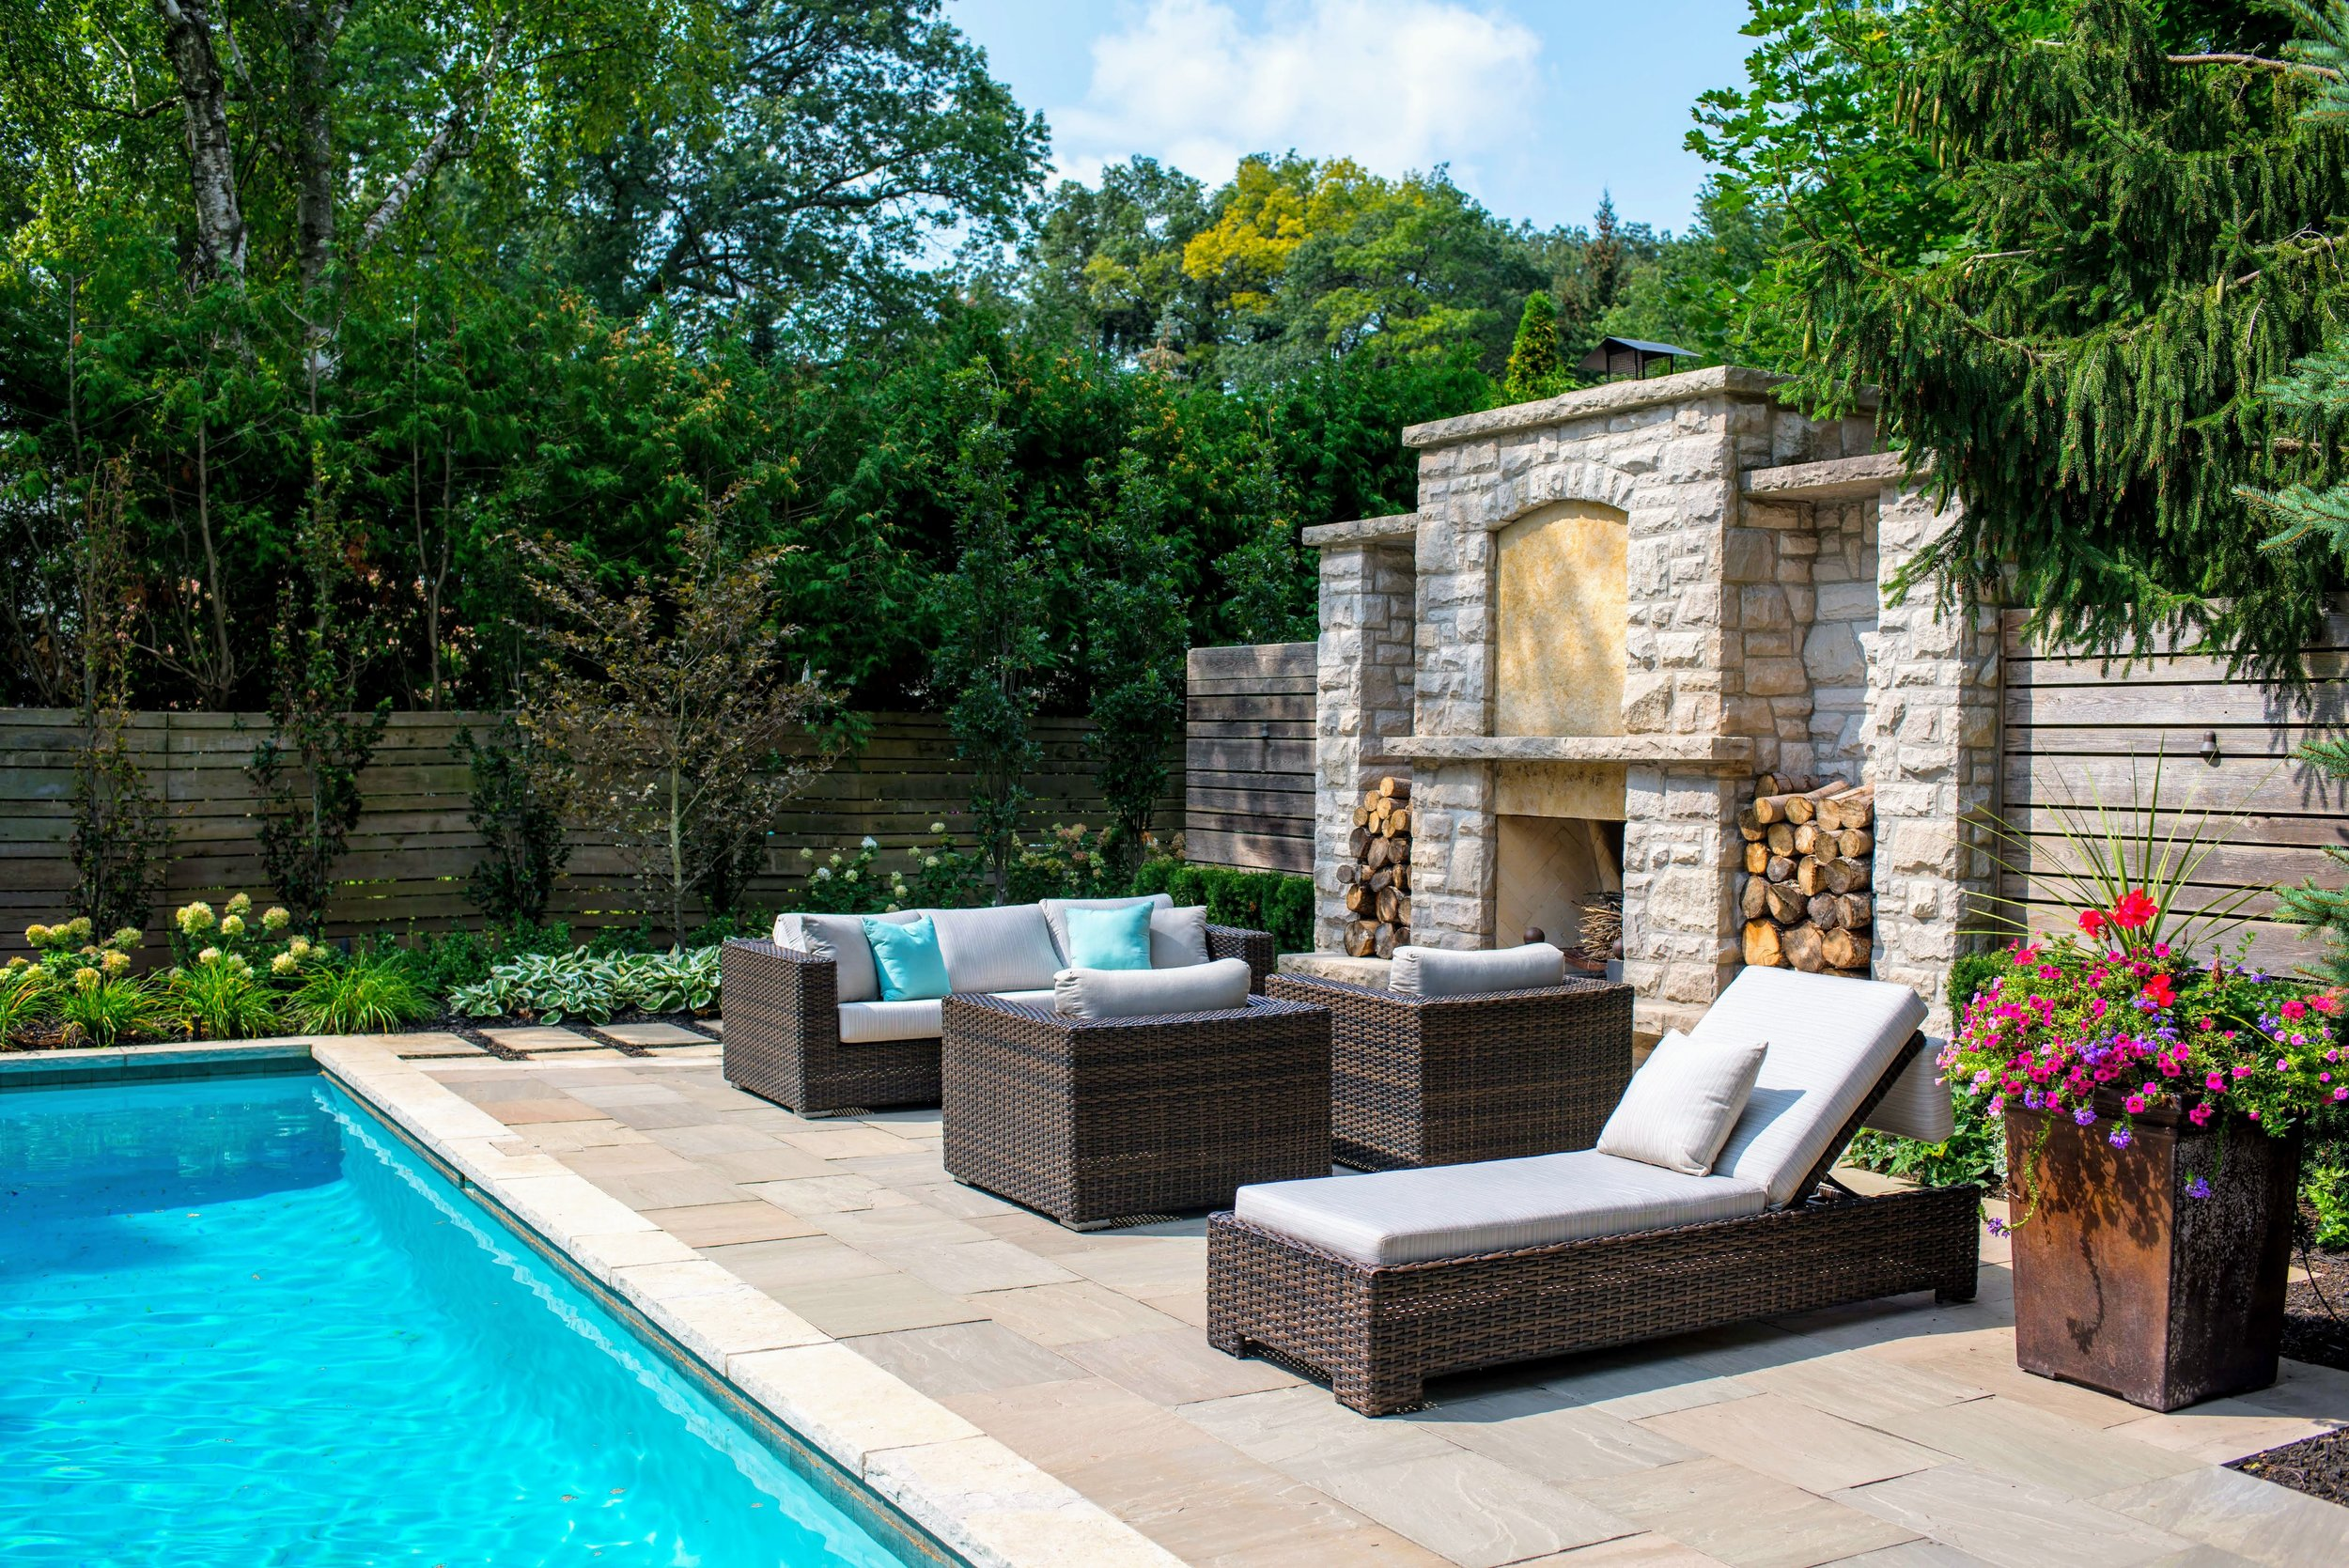 Full-scale design and build. - Our award-winning team of specialists work with you from start to ensure your vision of an outdoor living space is created with accuracy and excellence.